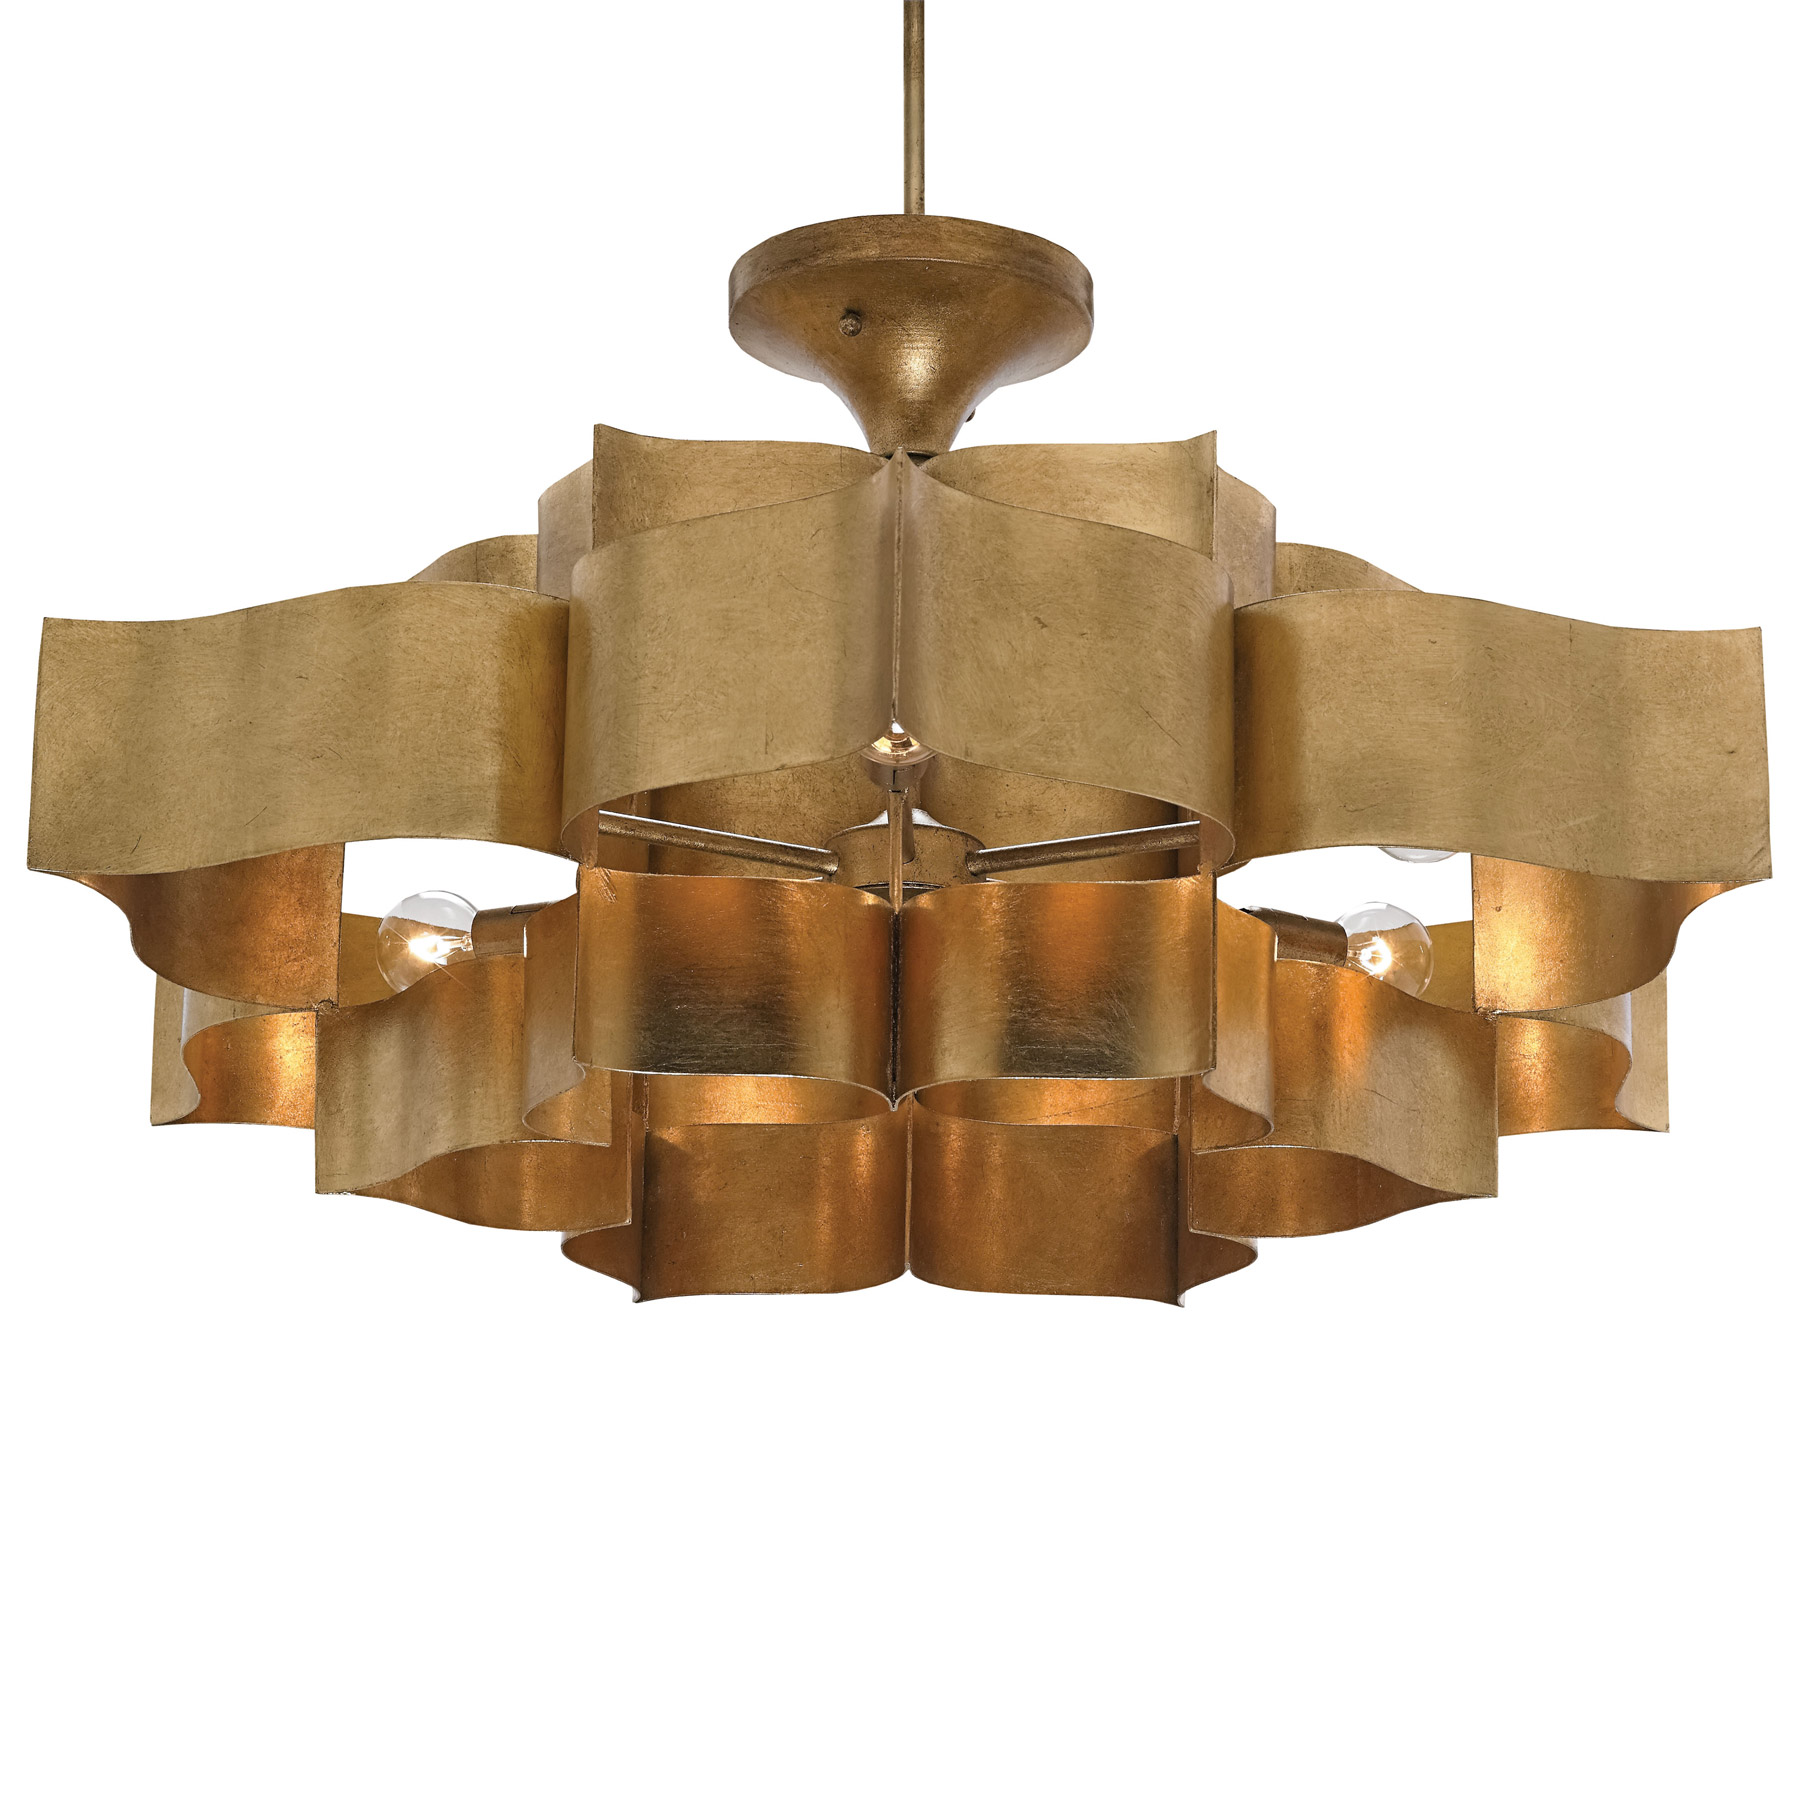 Currey And Company Lotus Chandelier: Currey And Company 9494 Grand Lotus Chandelier